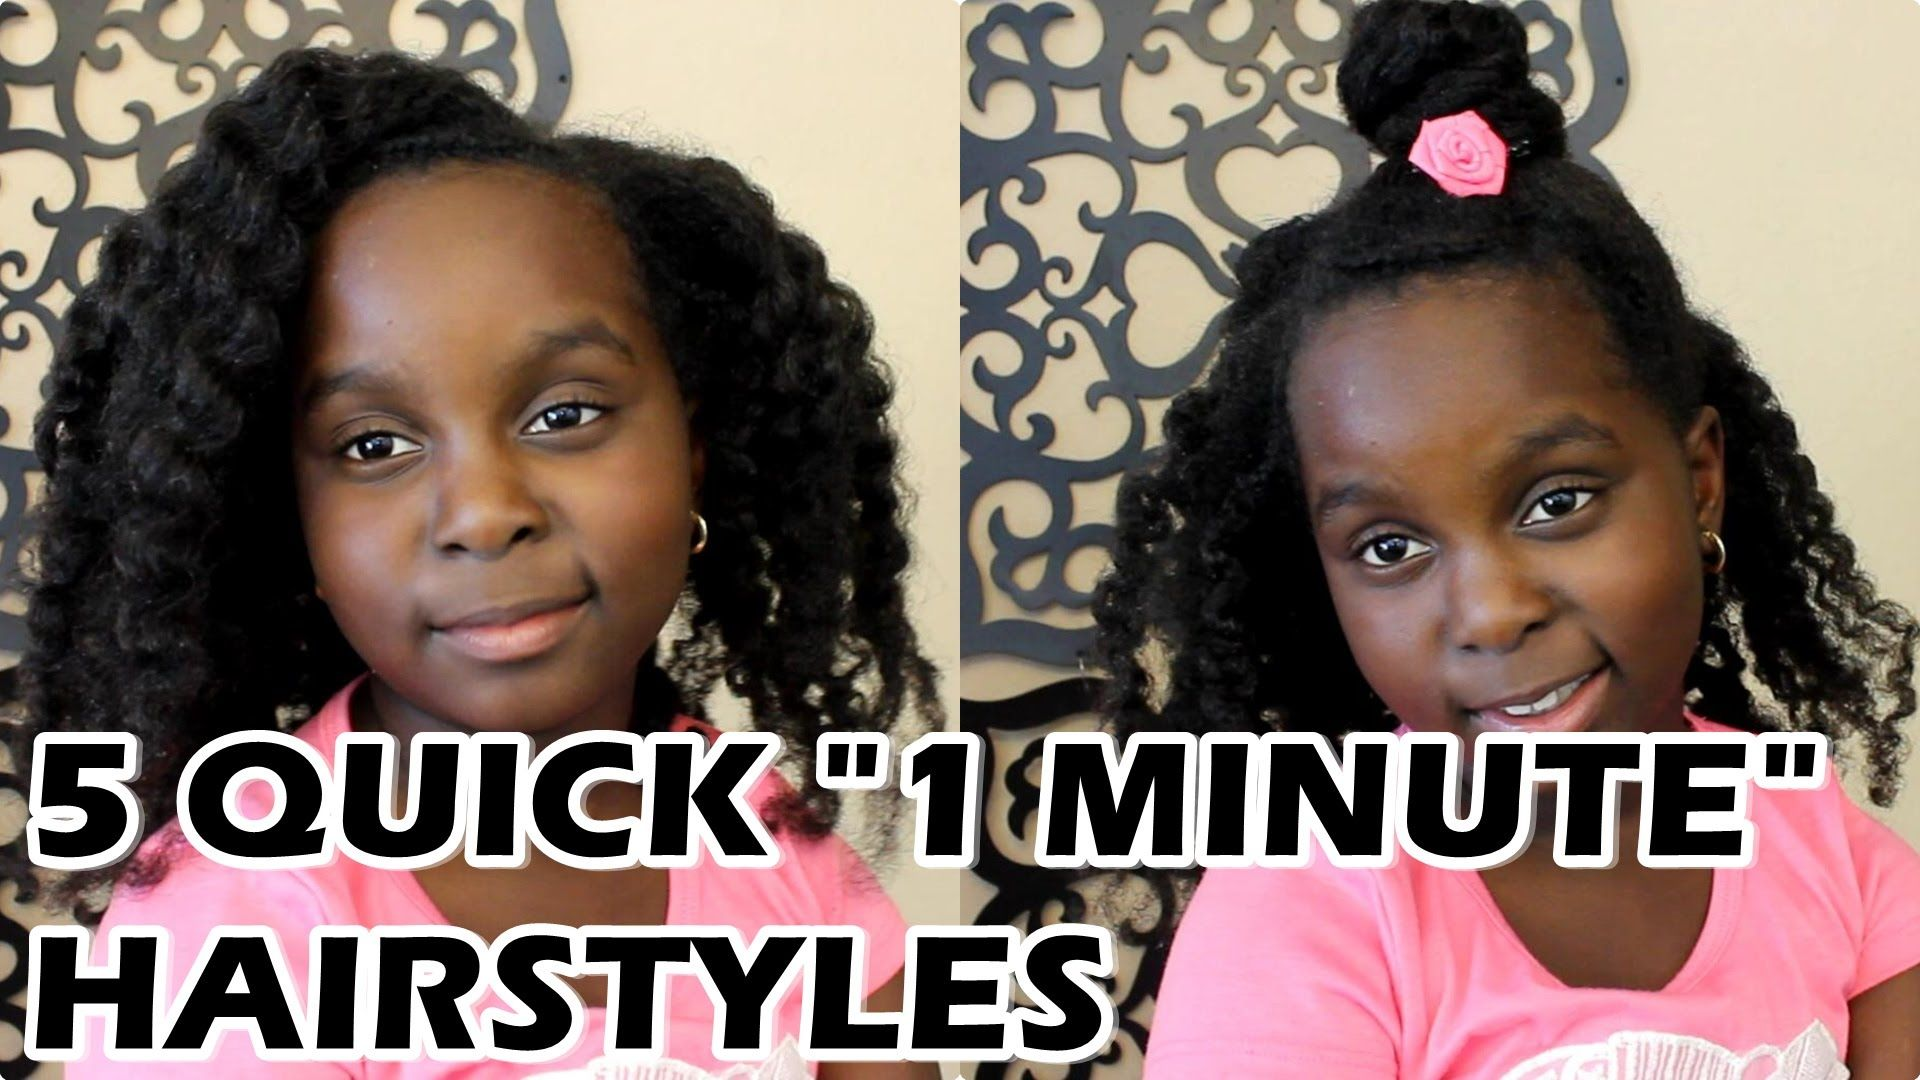 5 Super Easy 1 Minute Natural Hair Hairstyles By Lil Sis Youtube